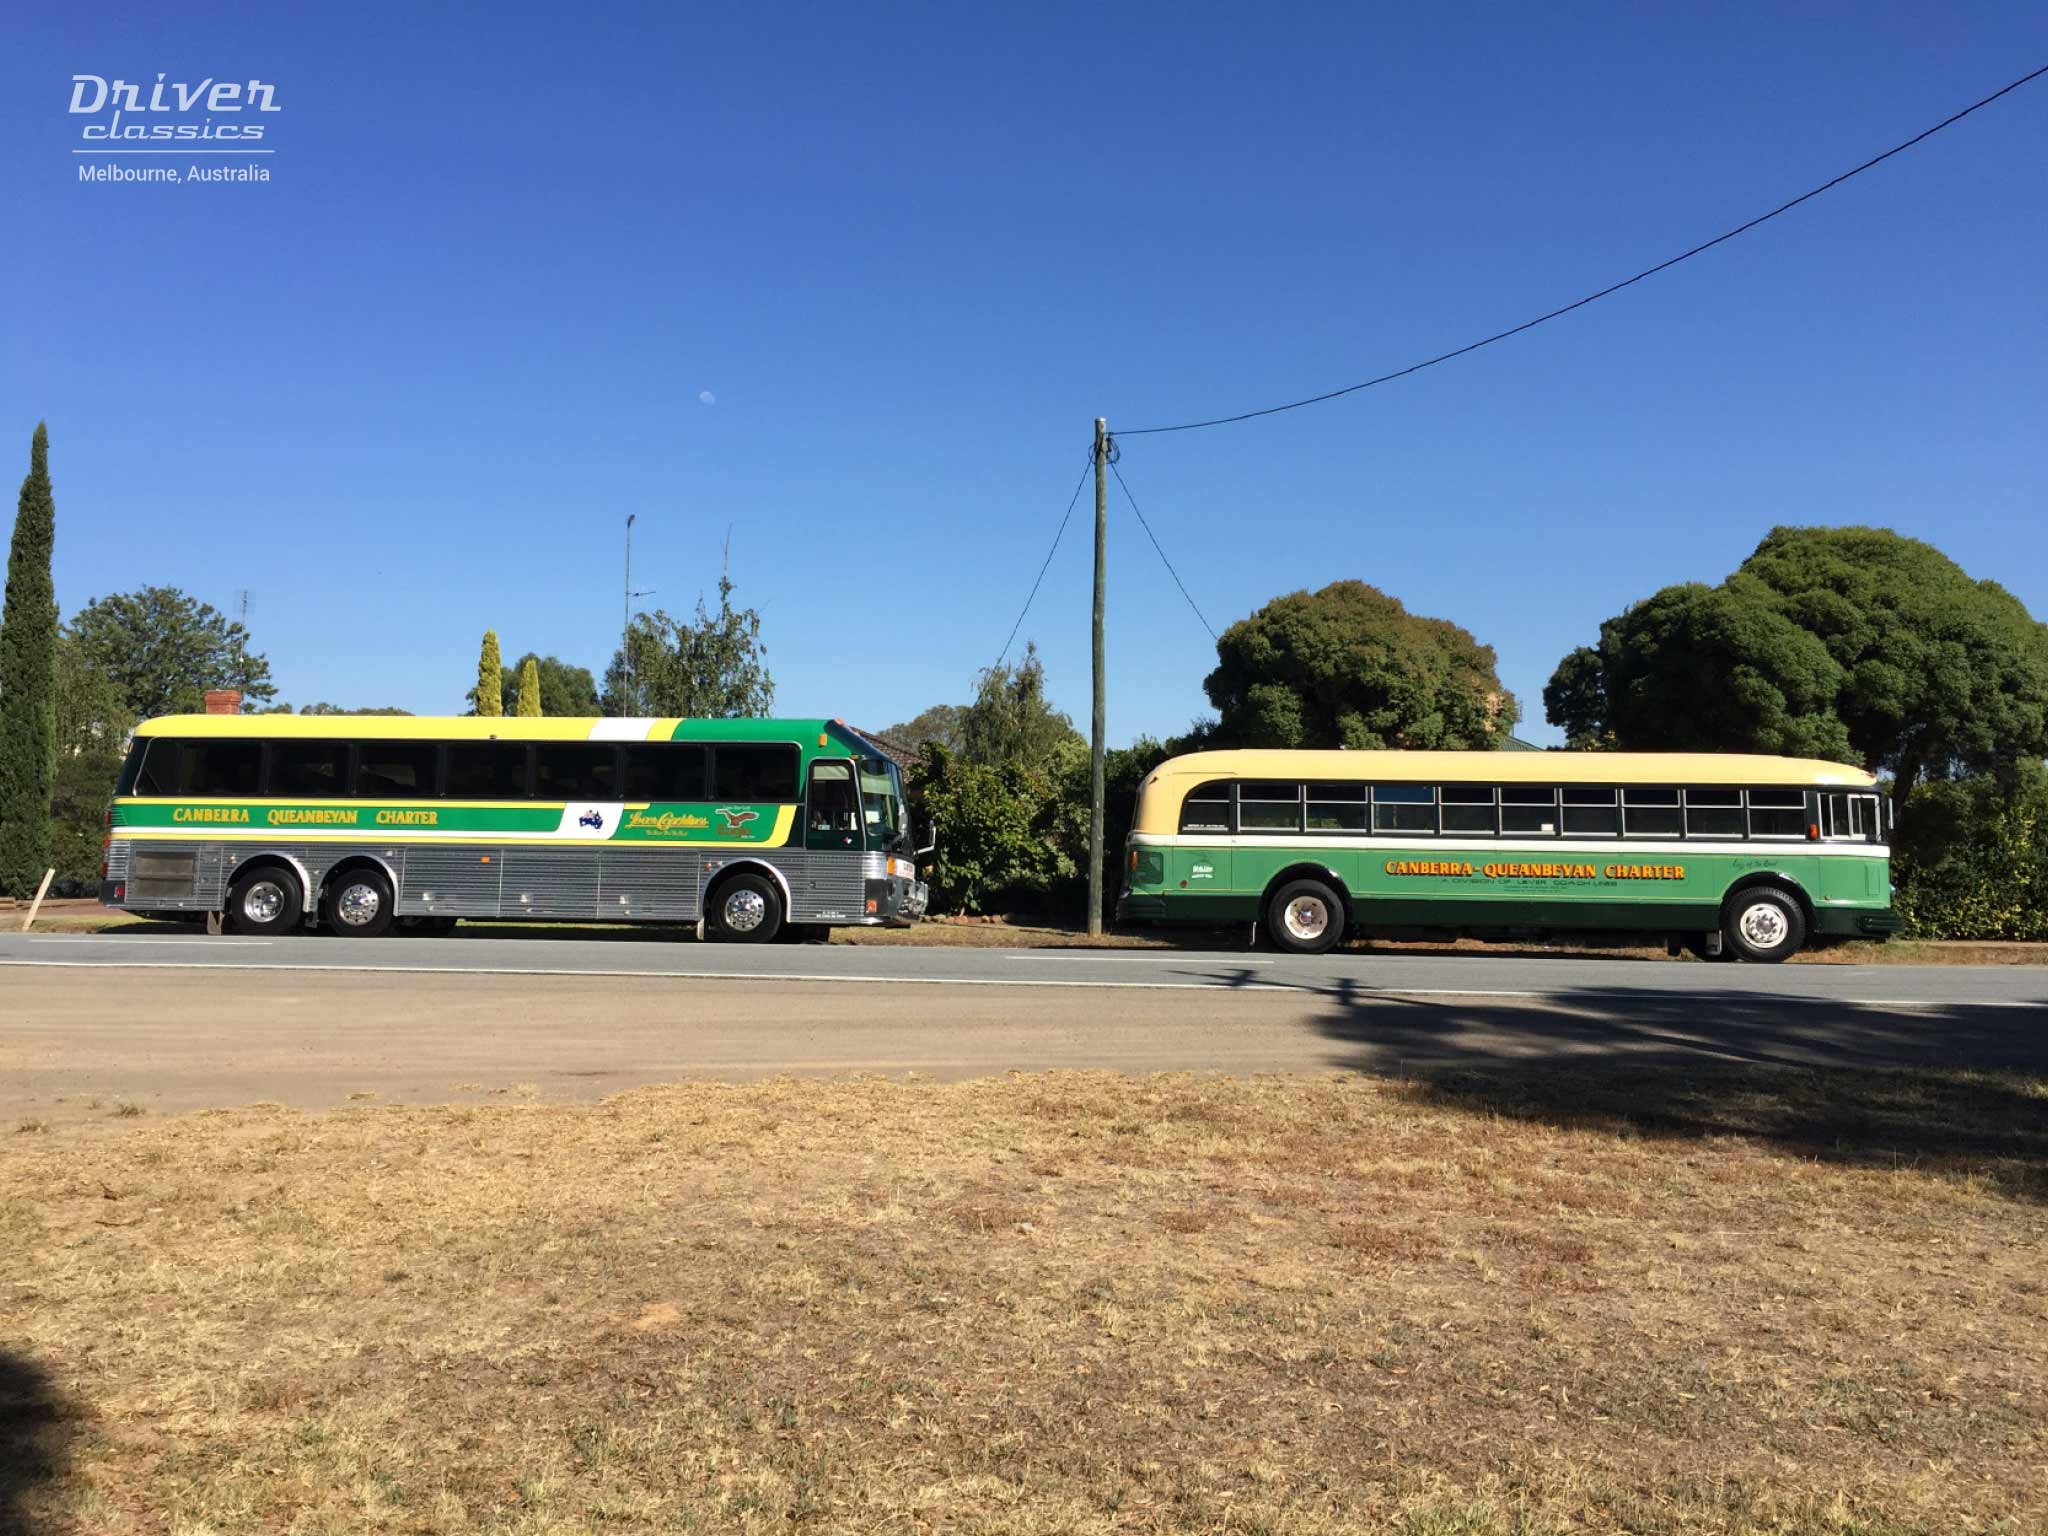 1989 Eagle 20 bus and 1948 White 798-12 bus, Murchison Victoria